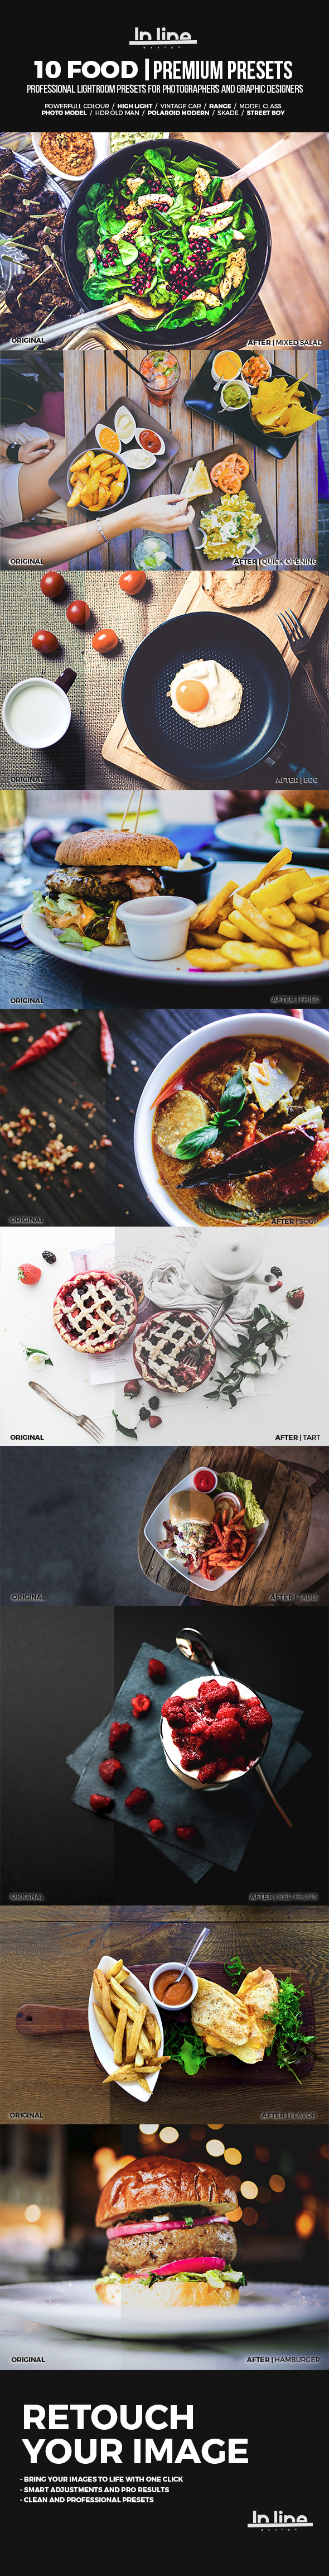 10 Food Premium Presets Lightroom - Lightroom Presets Add-ons